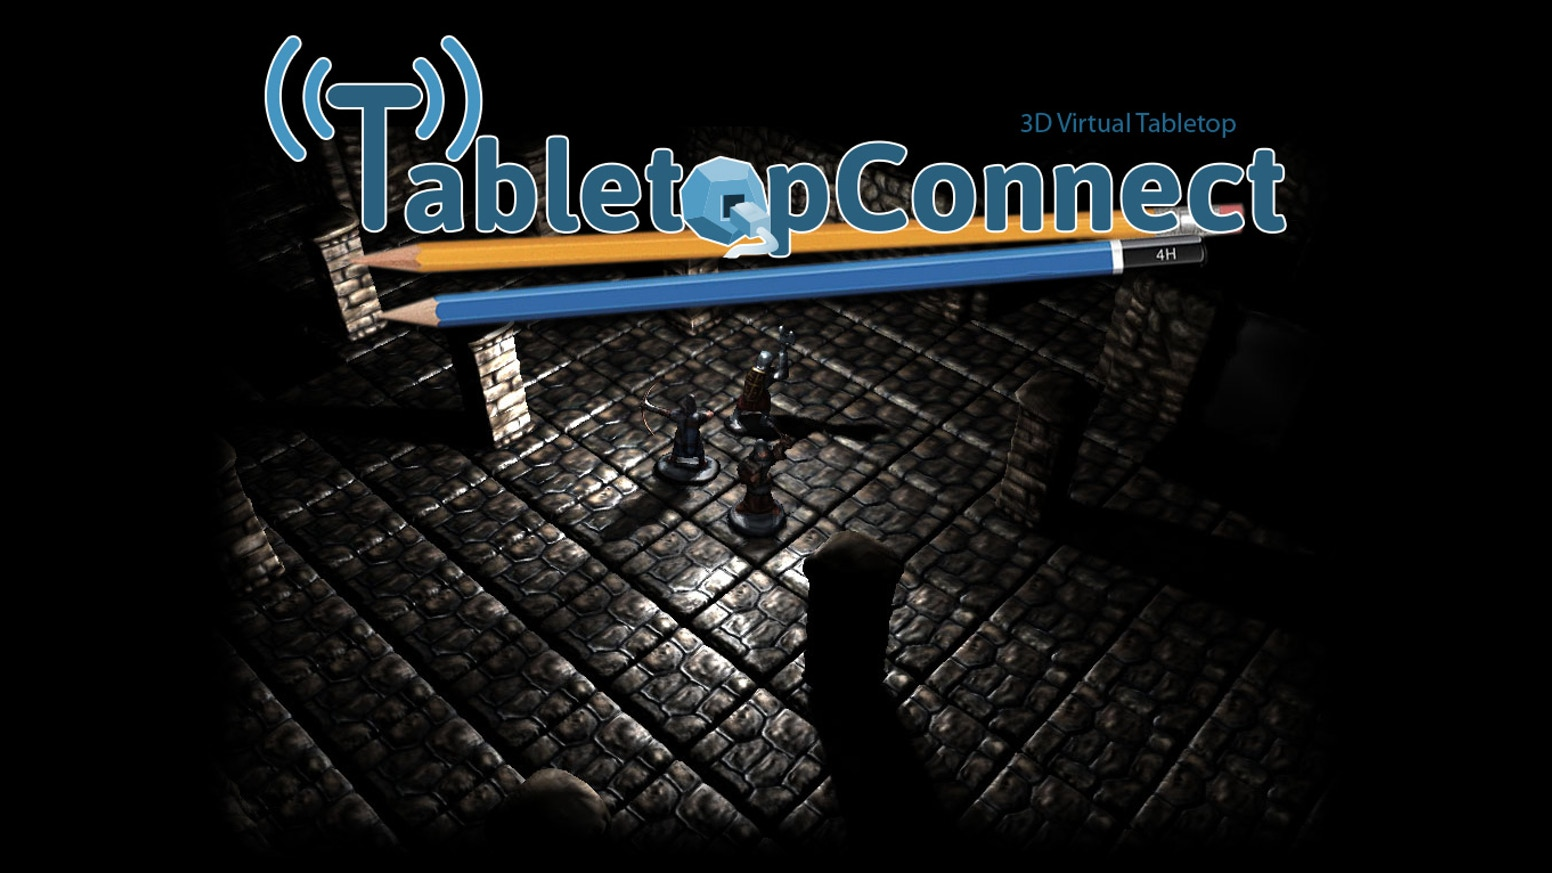 Tabletop Connect Have been waiting for this